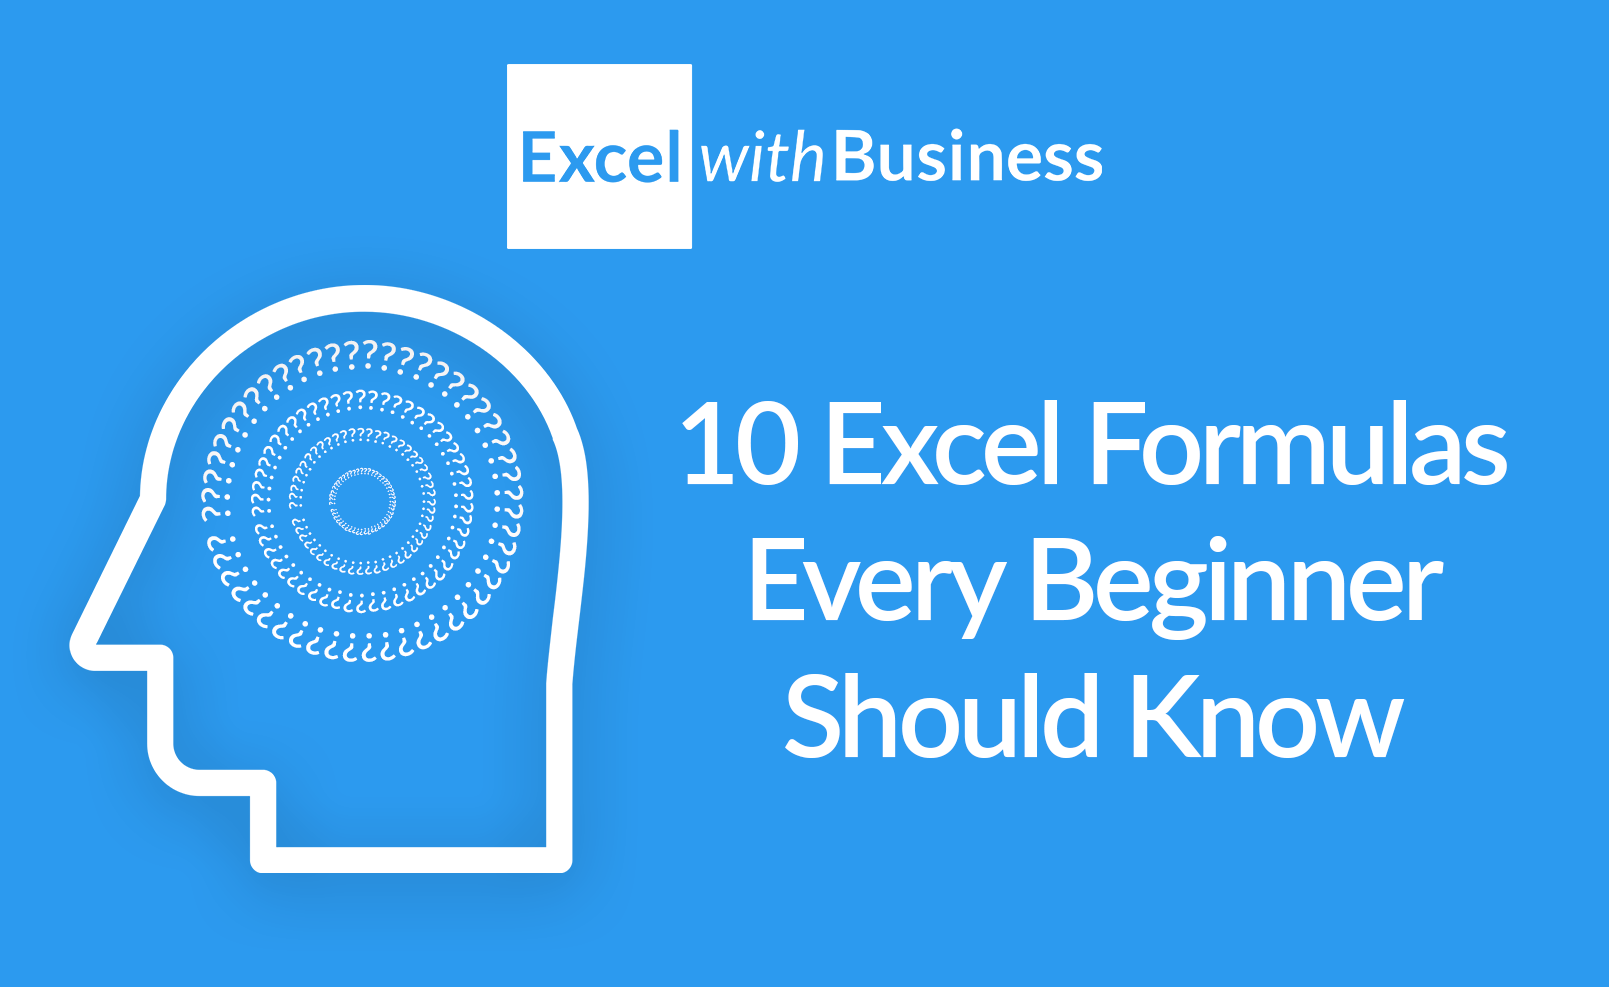 10 Excel Formulas Every Beginner Should Know - Excel with Business